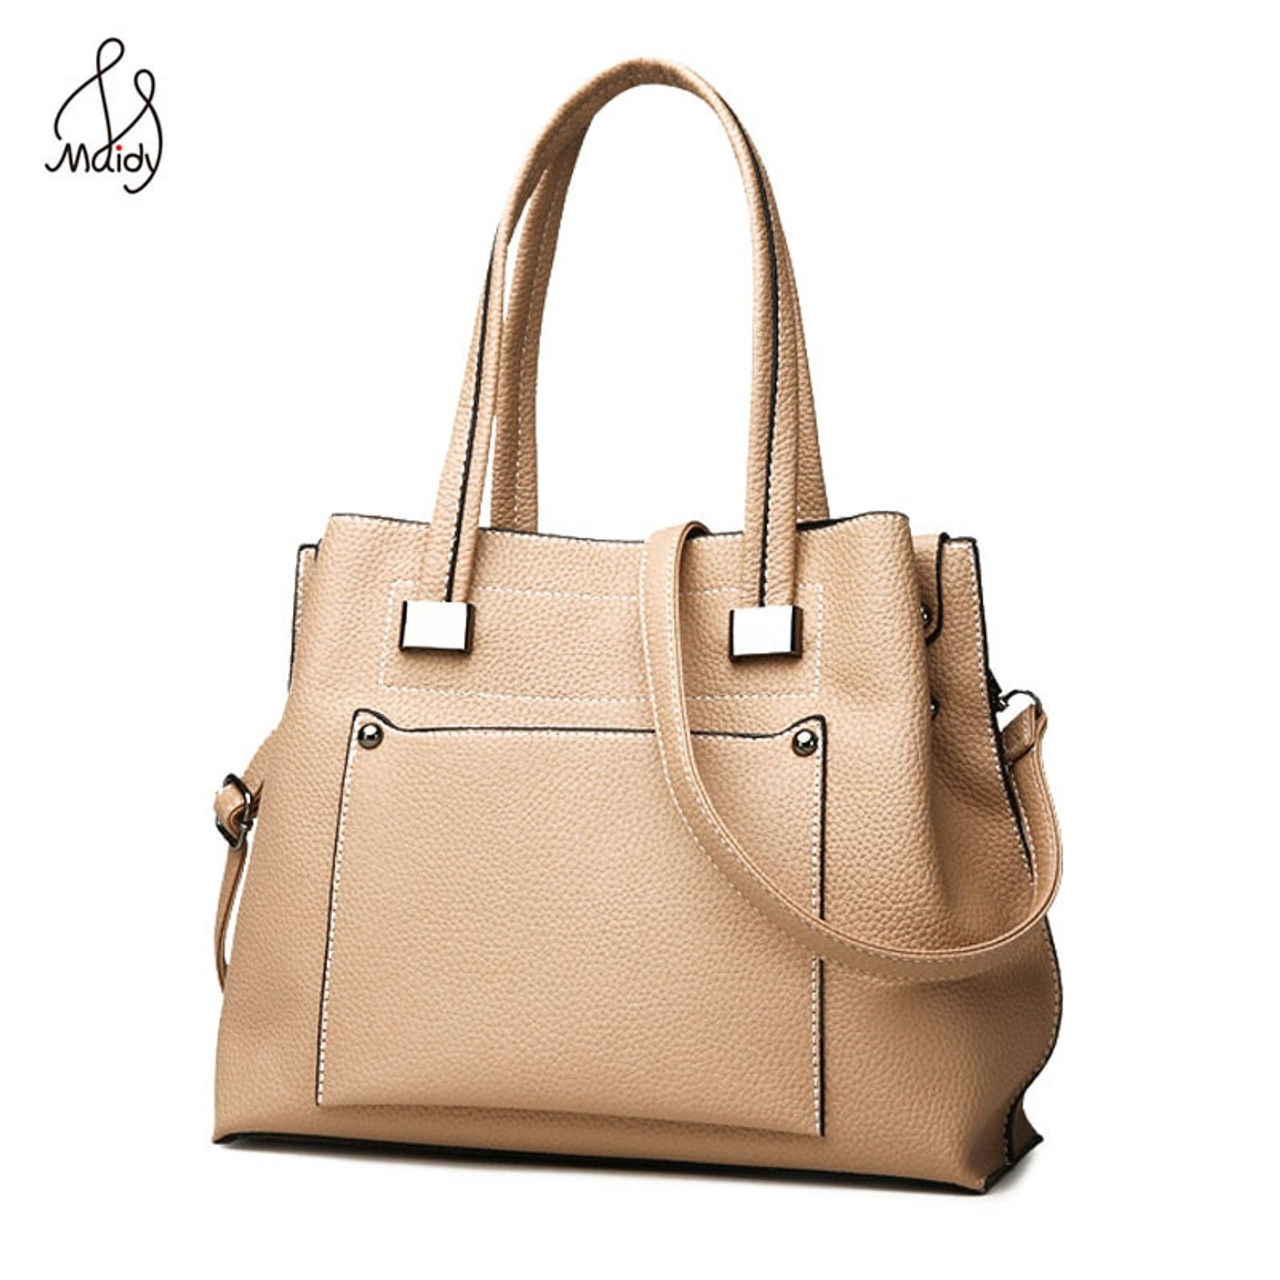 9b3aa4f3934 Luxury Handbags Women Bags Designer Lady Leather Large Soft Capacity Casual  Tote Shoulder Crossbody Messenger Brand Famous Maidy